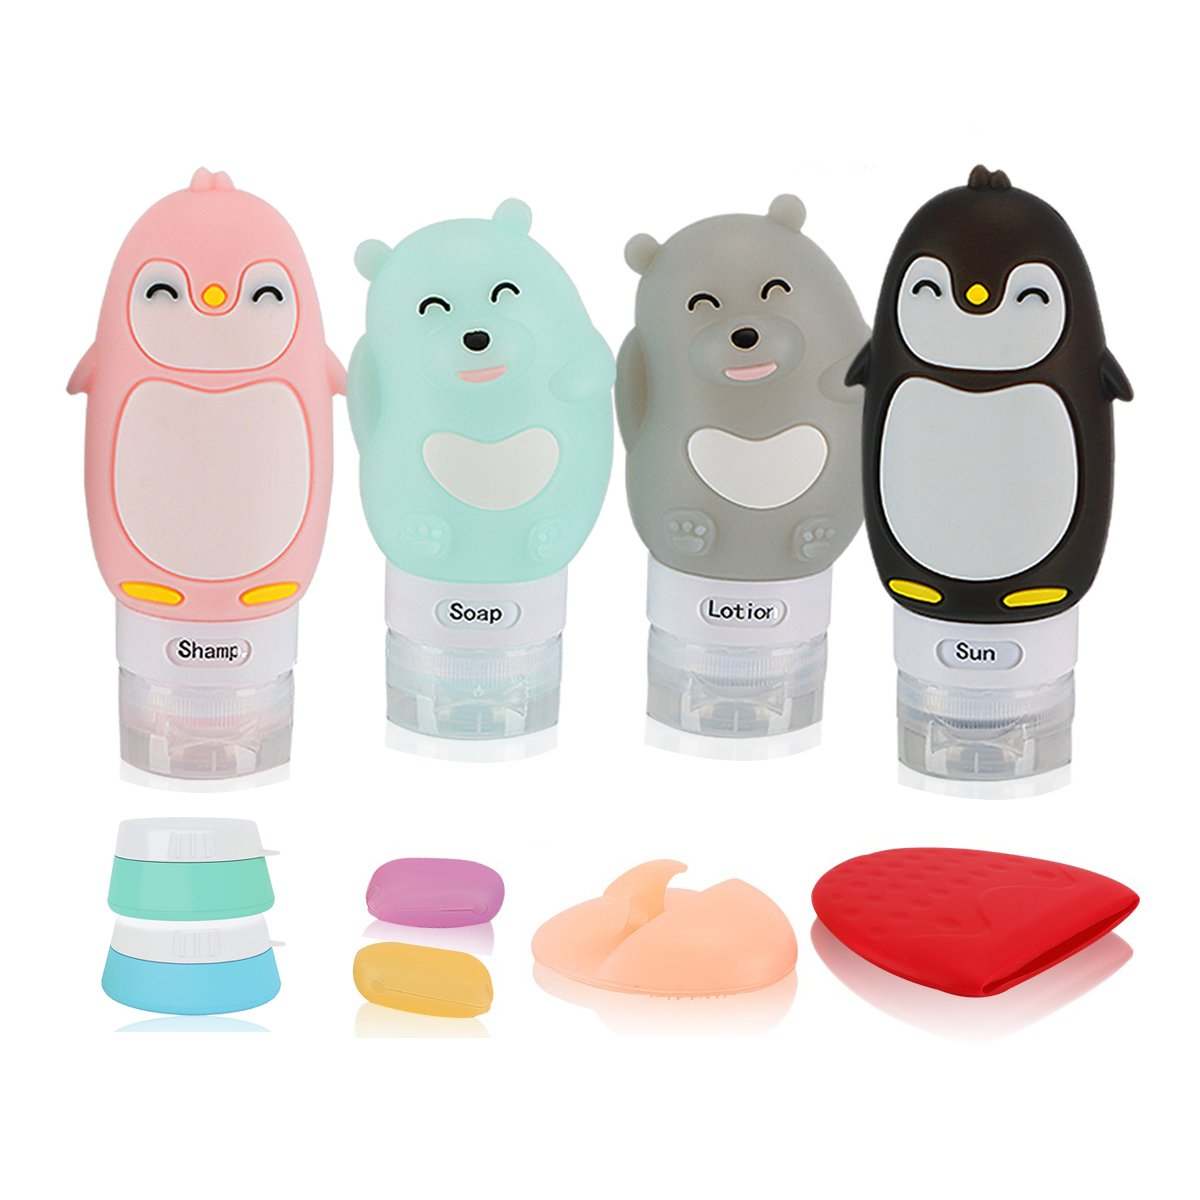 [Value 10PCS] Cute Travel Bottles Set 3 OZ Pretty Portable FDA approved TSA approved 100% BPA Free Leak Proof toiletry bottles Silicone cosmetic Containers Carry-on cream jars with lids (Bottles_Cute)